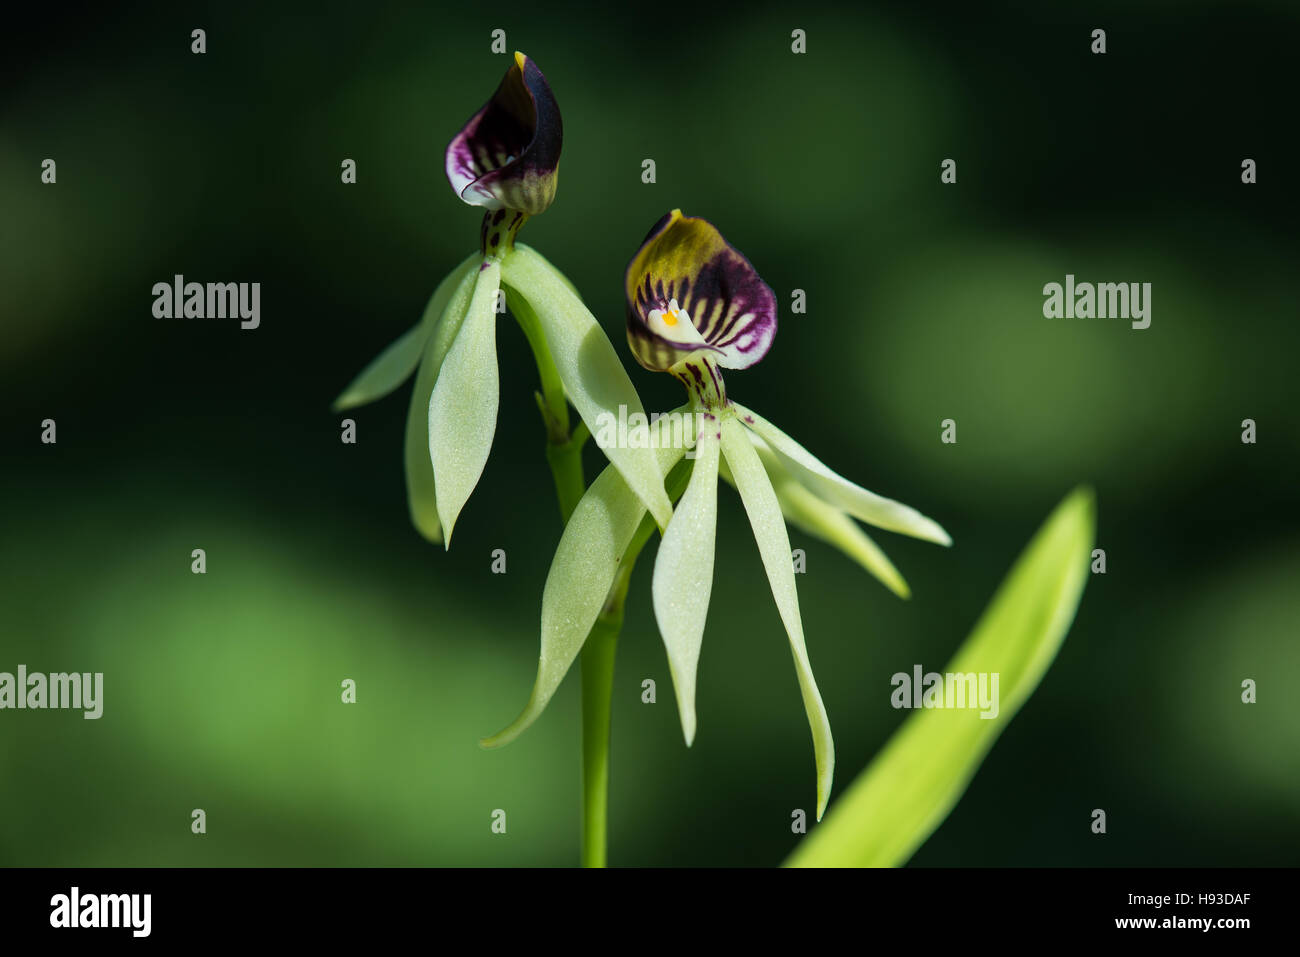 Flowers Of Black Orchids Stock Photo 126080823 Alamy